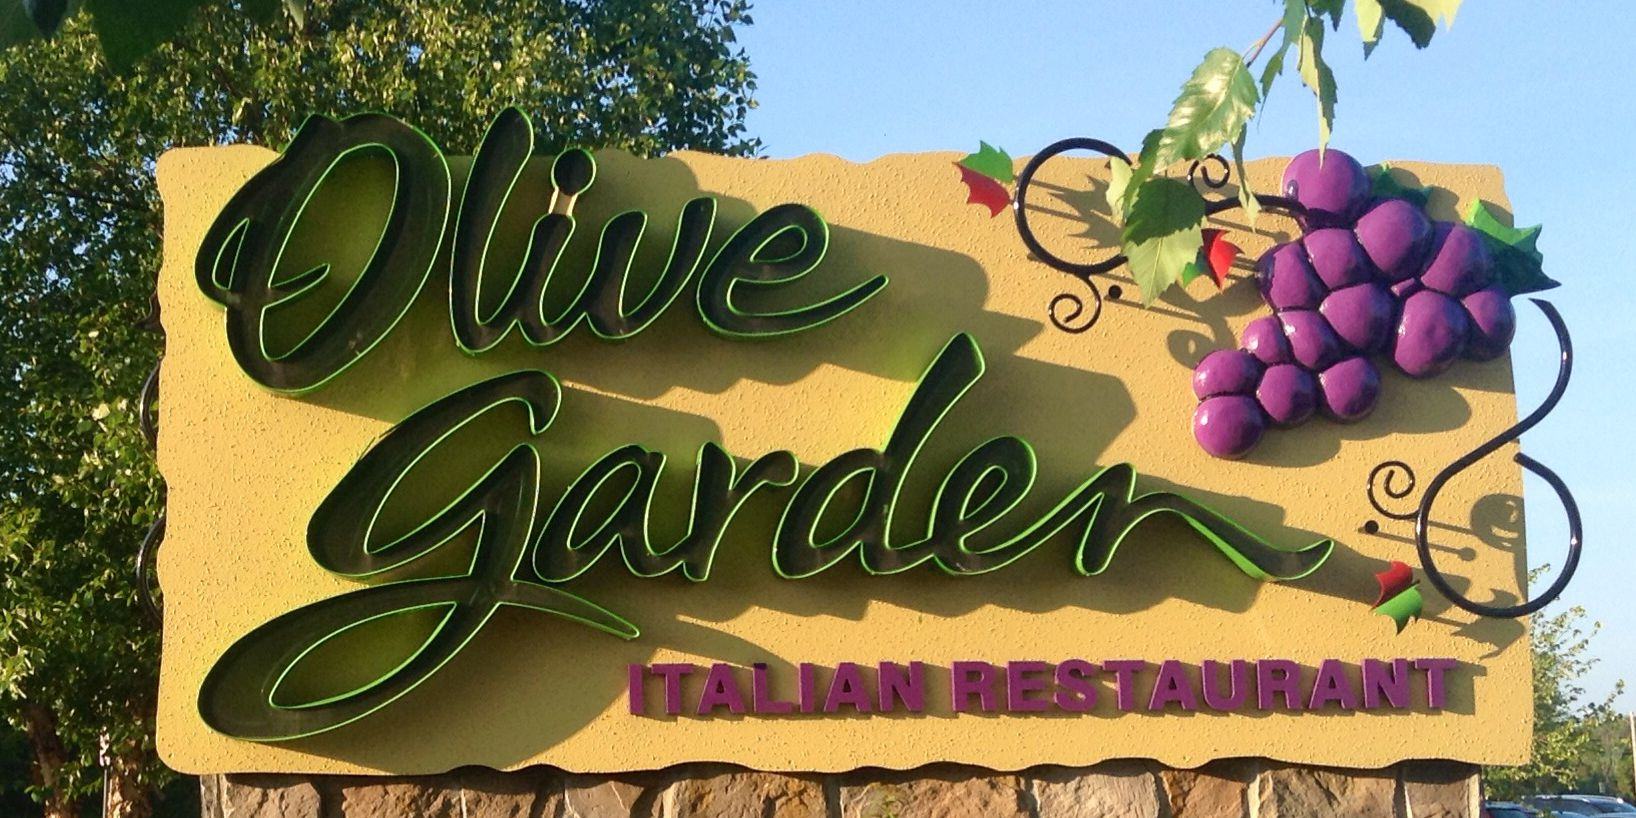 Texas woman sues Olive Garden, claims stuffed mushroom severely burned her